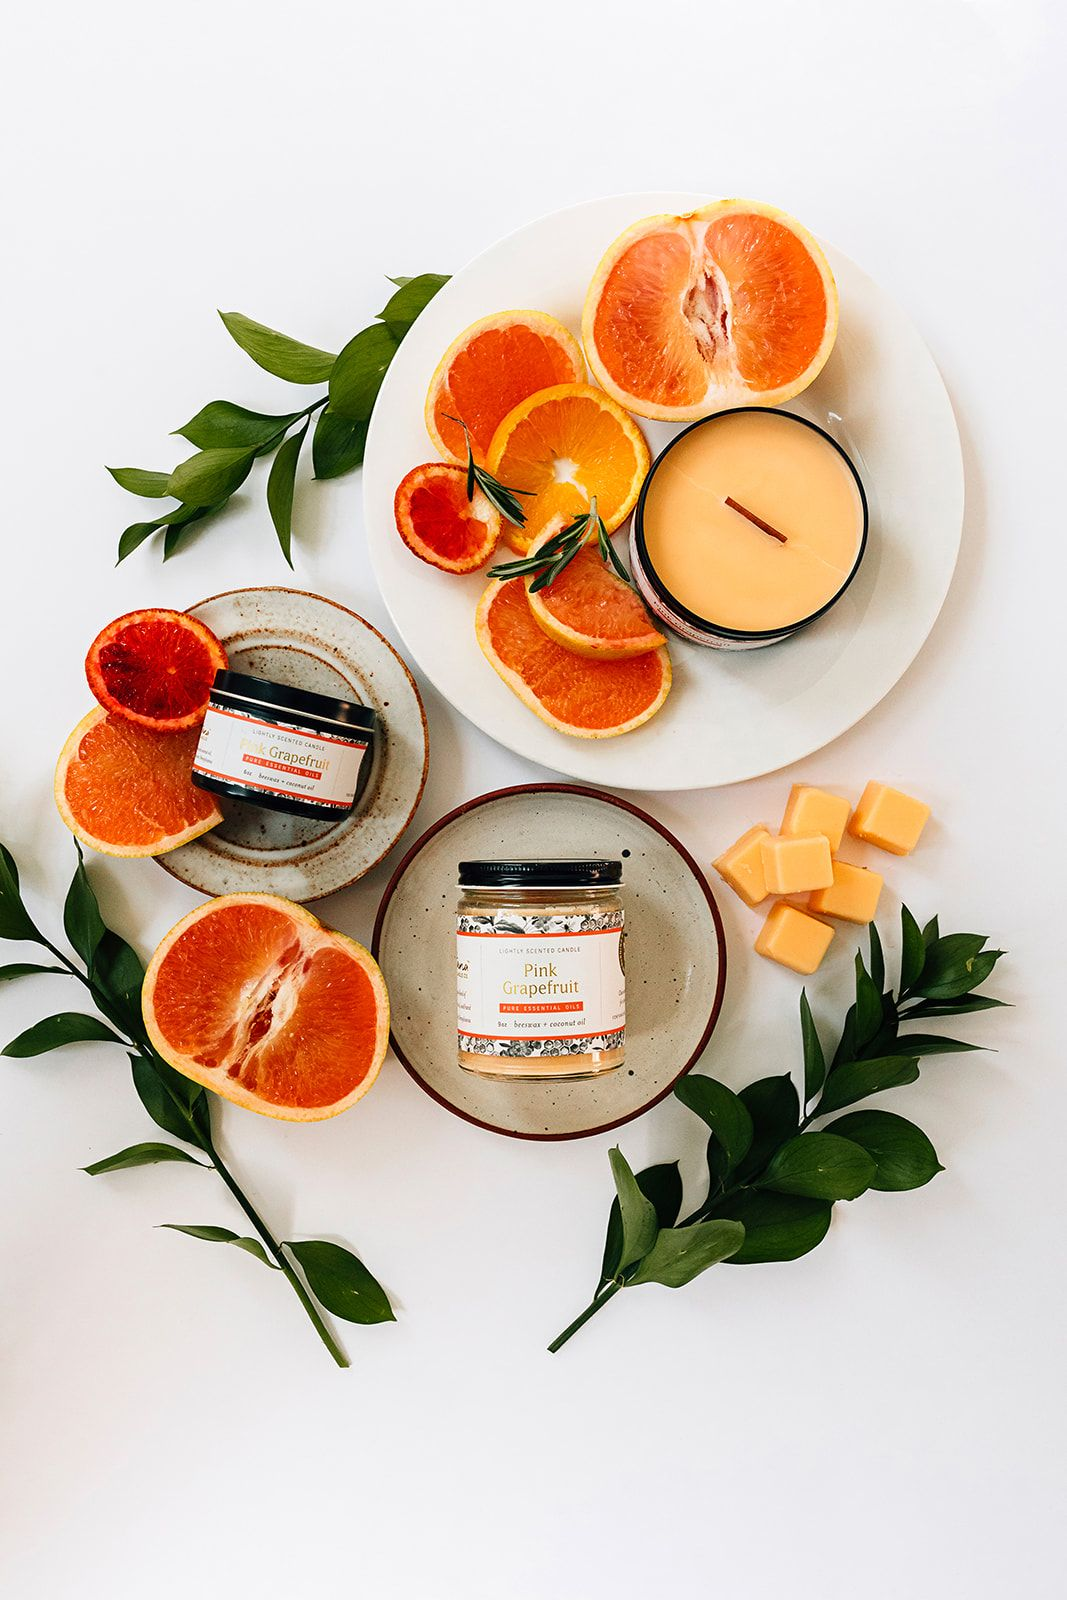 Pink Grapefruit Essential Oil fontanacandleco in 2020